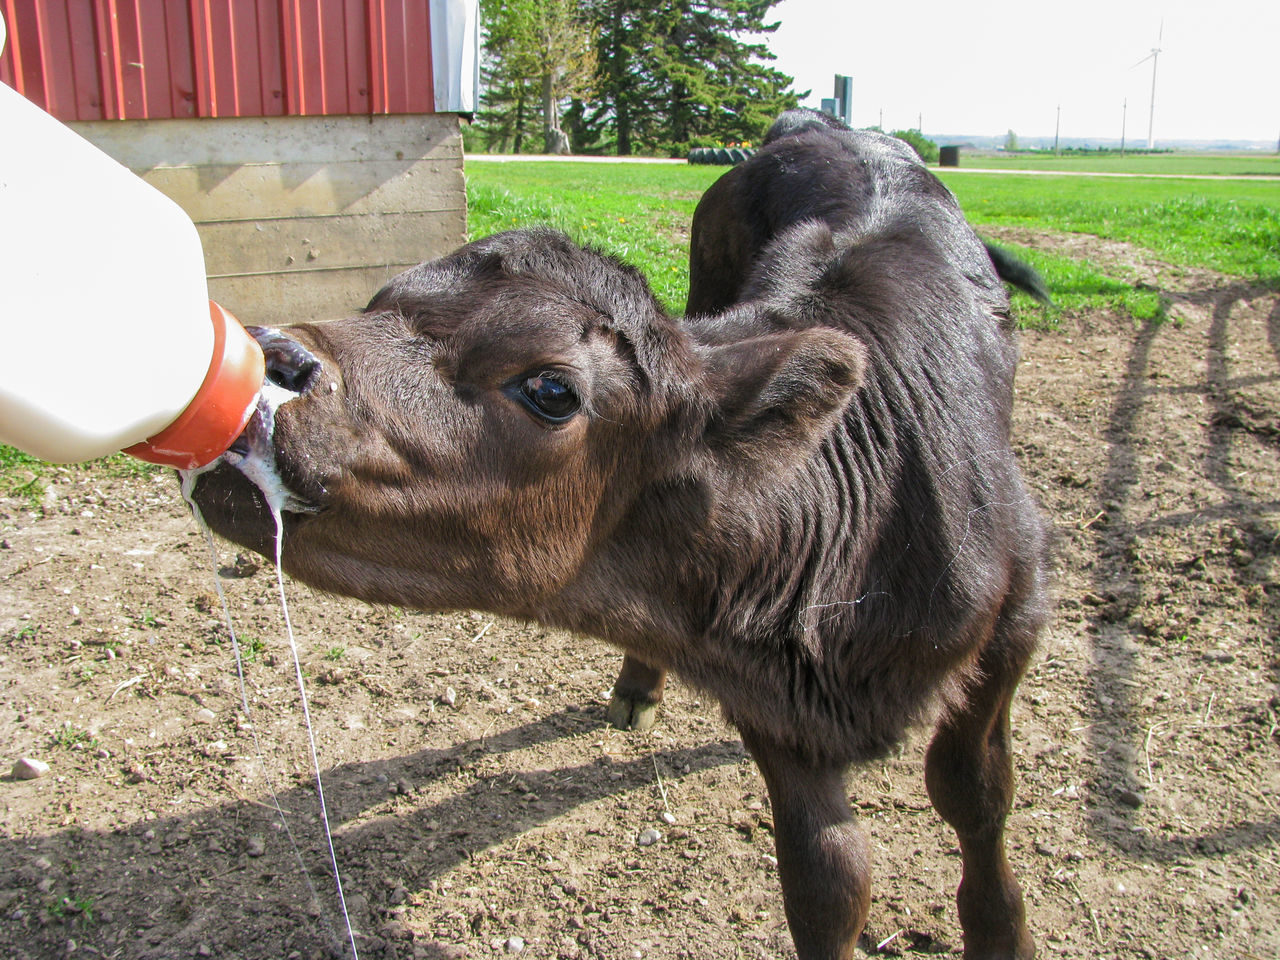 Agriculture Animal Black Black Angus Calf Canonphotography Cattle Domestic Animals Drinking Eating Farm Livestock Milk Milk Bottle Outdoors Standing Young Animal